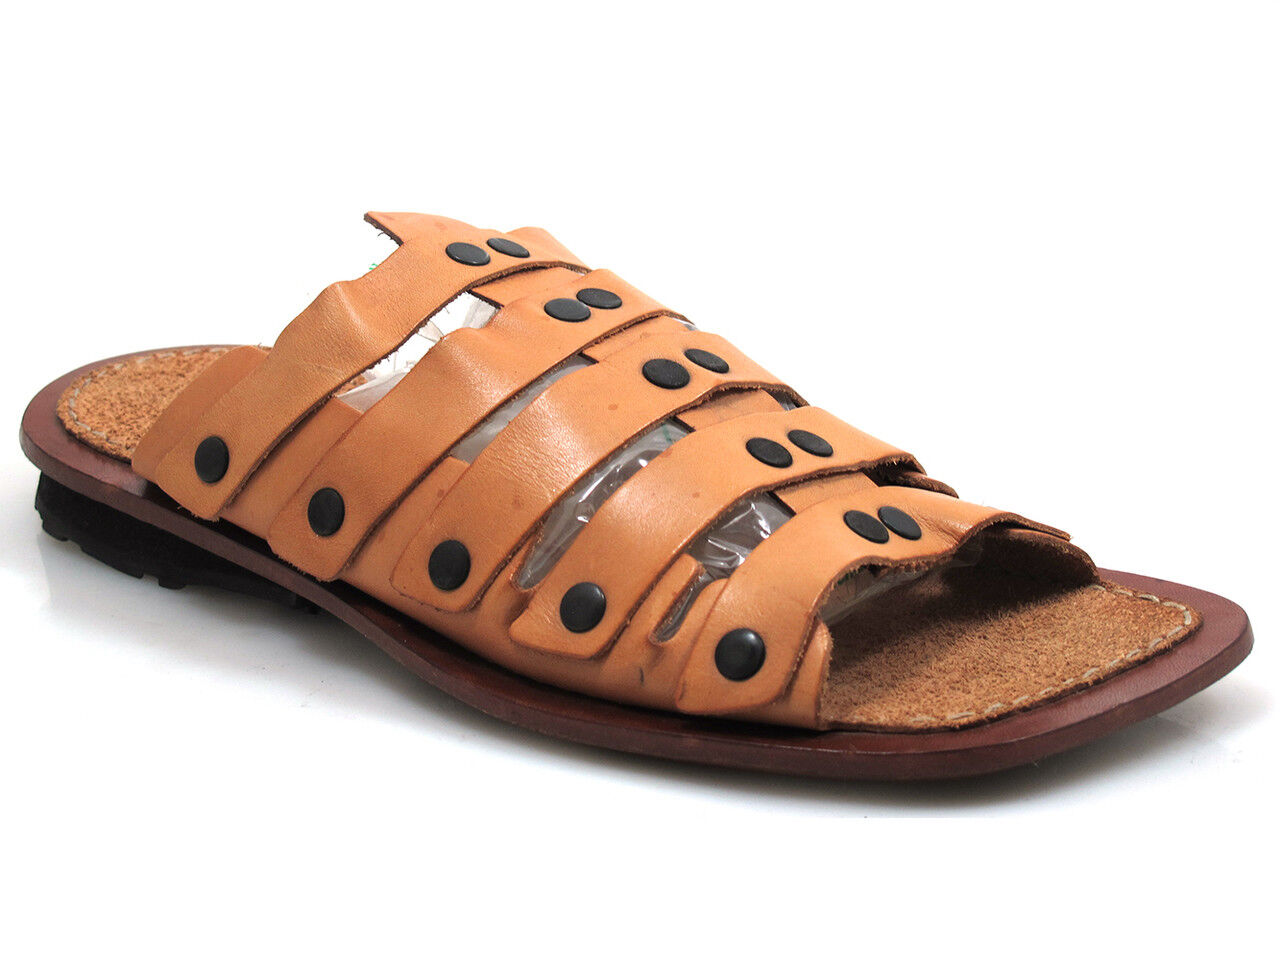 Davinci 10745 10745 10745 Men's Leather Slip On Strap Sandals be2b9e